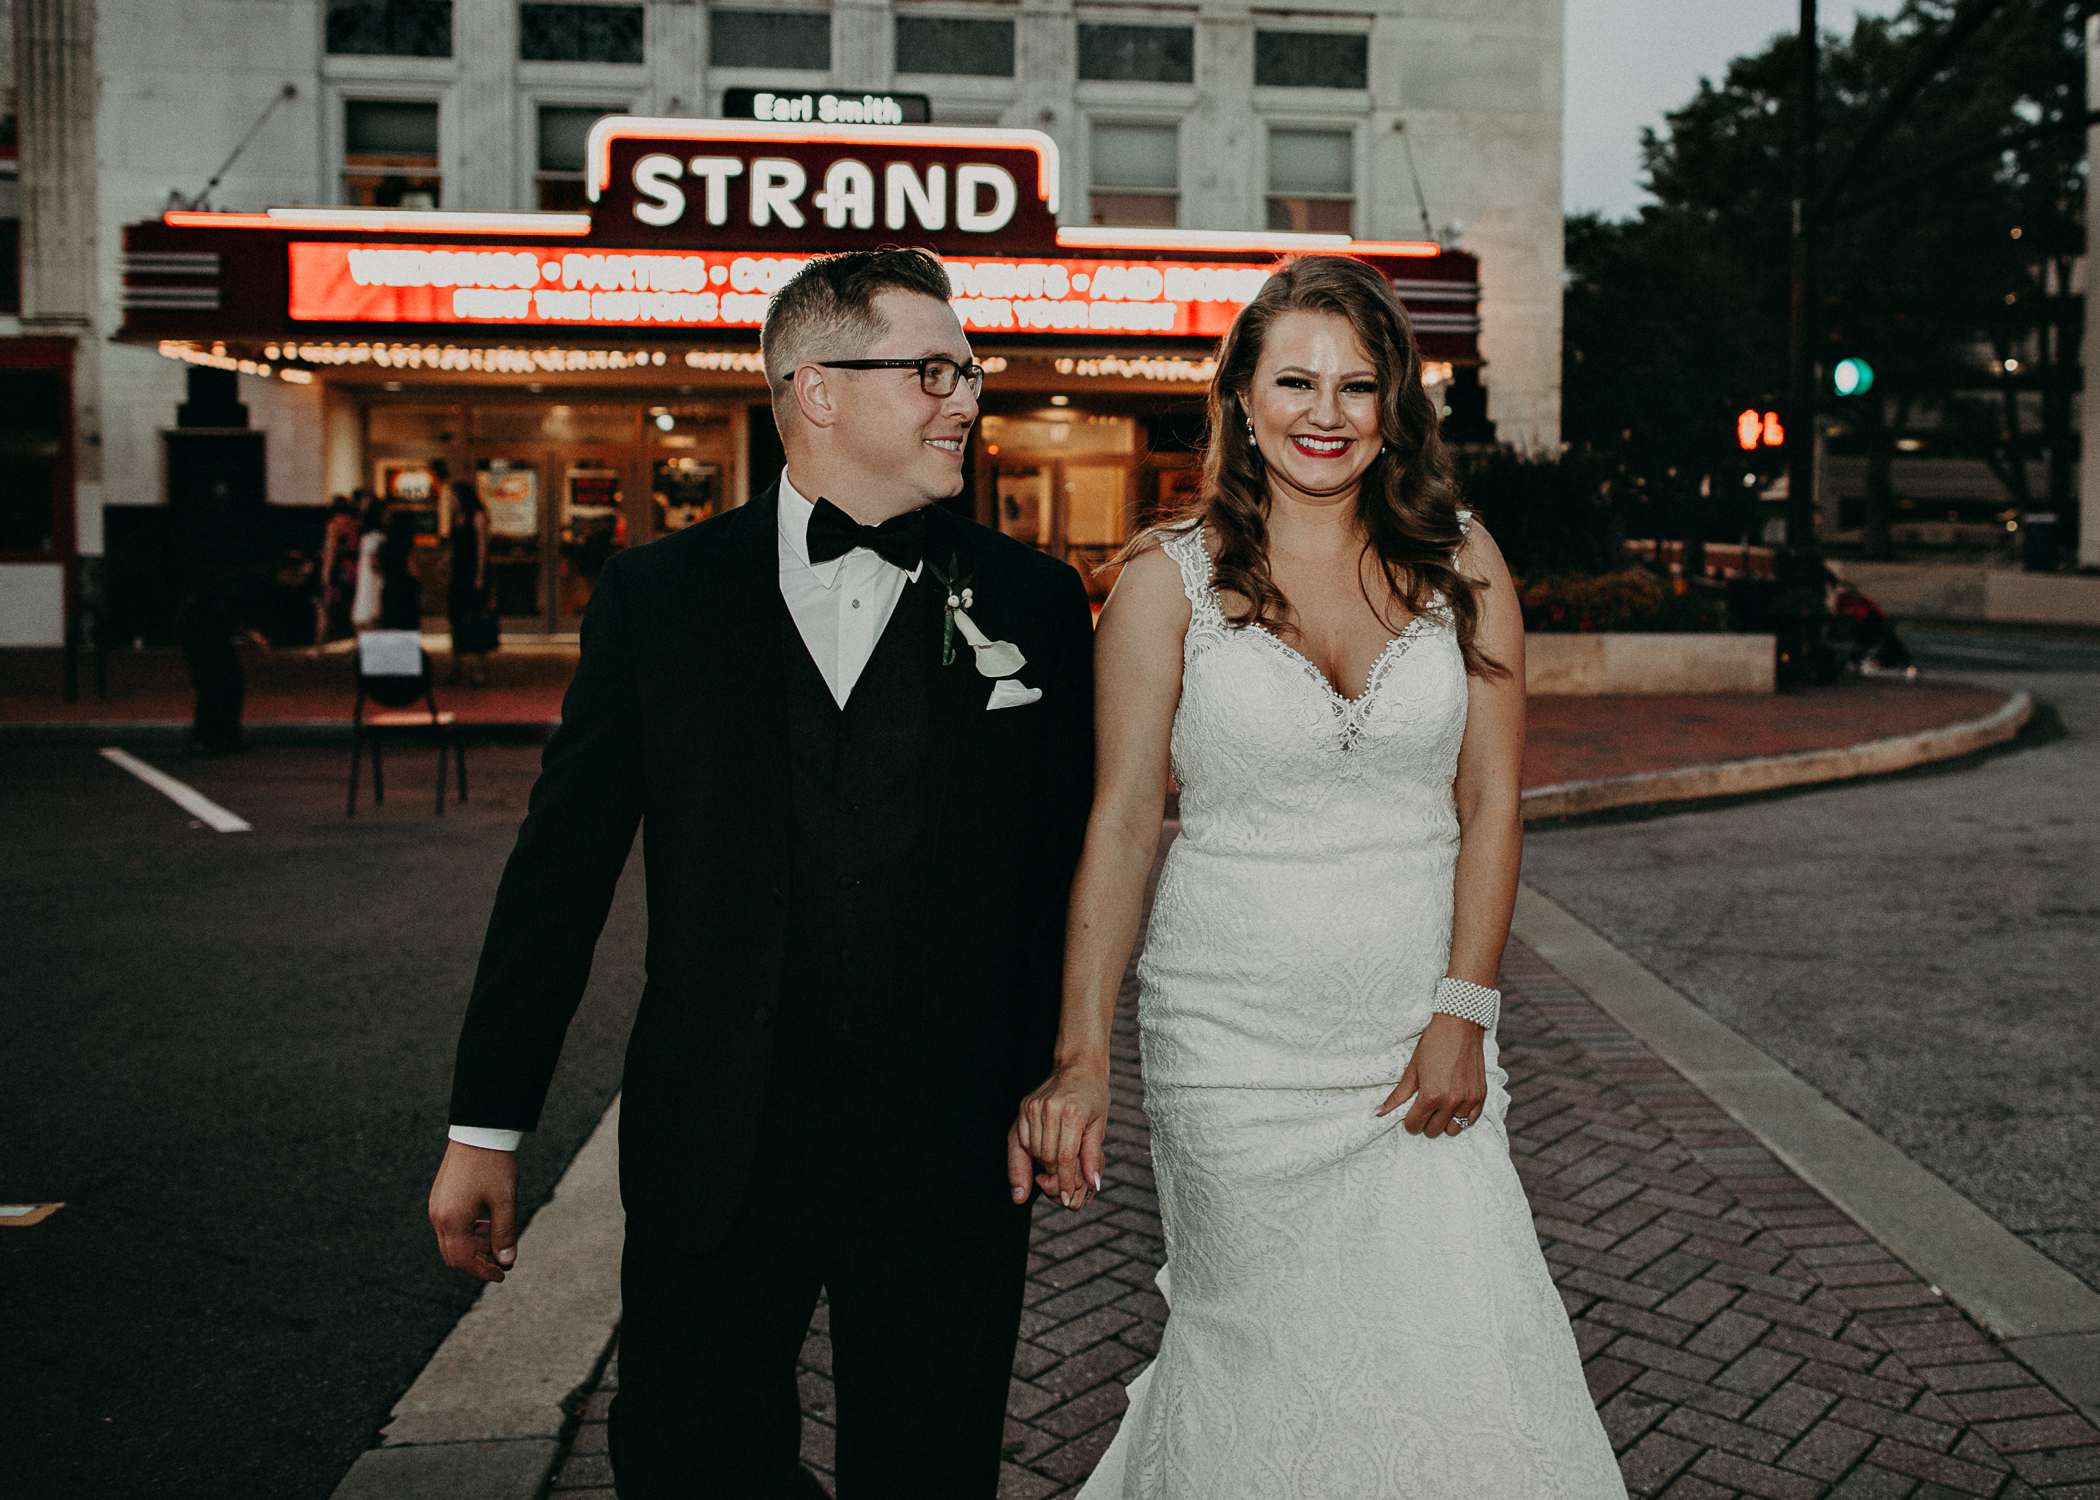 Allison and Billy - earlsmithstrand_marietta square georgia wedding photography-80.jpg